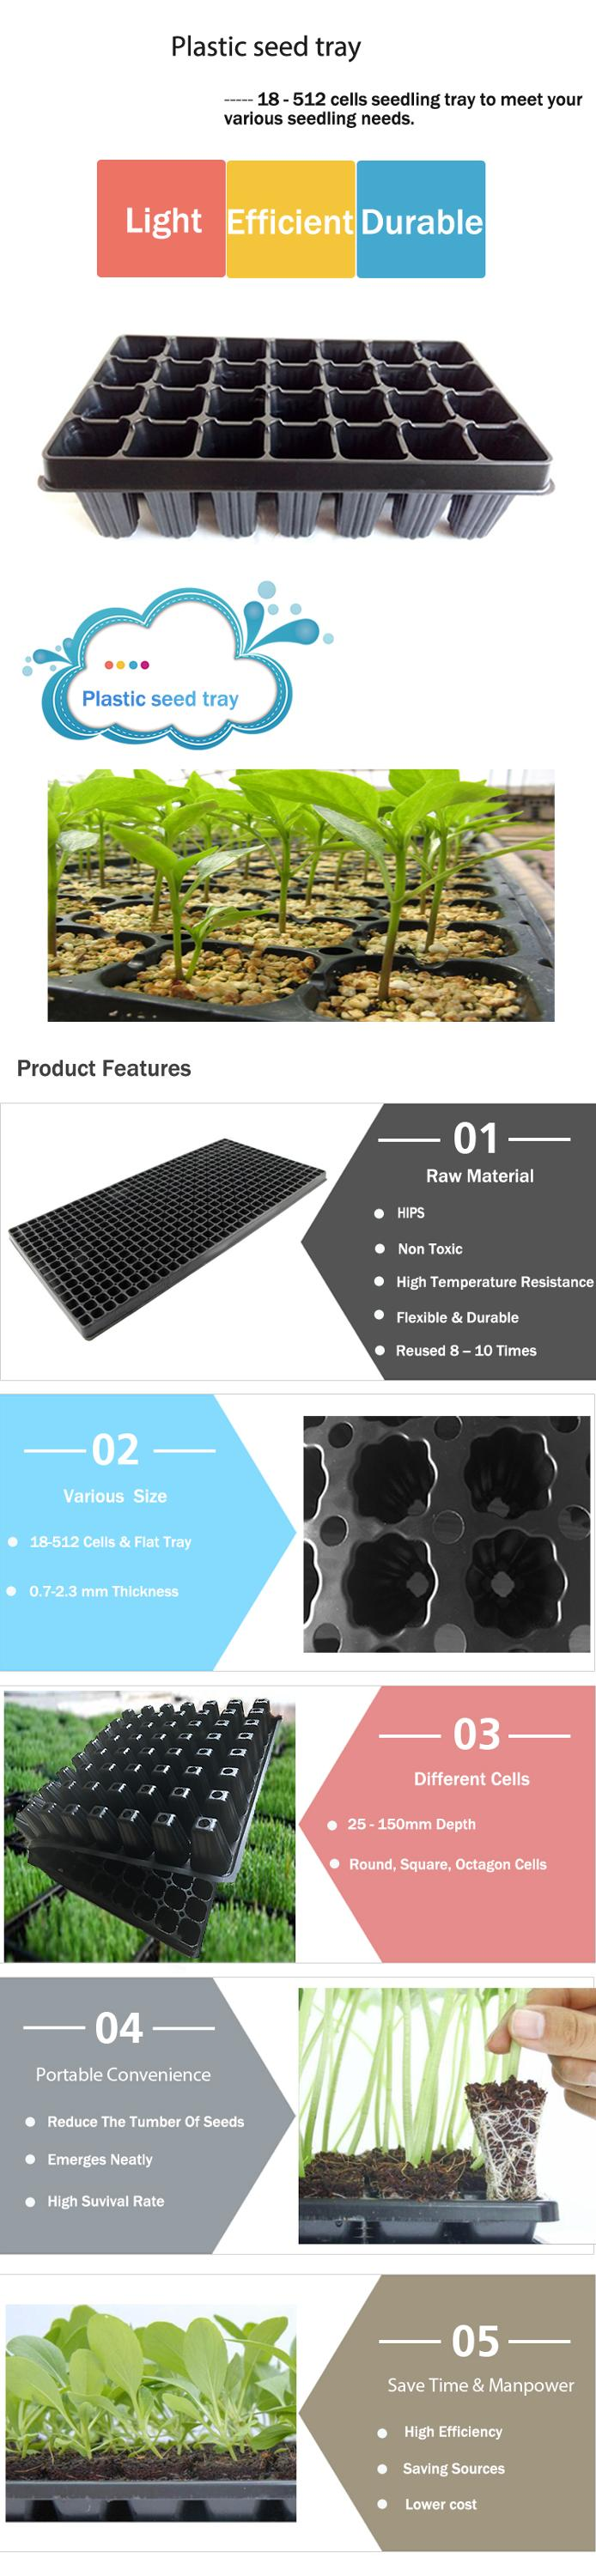 2017 Hot Selling Seeds Nursery 10*20 Inch Plastic Fodder Tray Nursery Tray With Holes For Sale